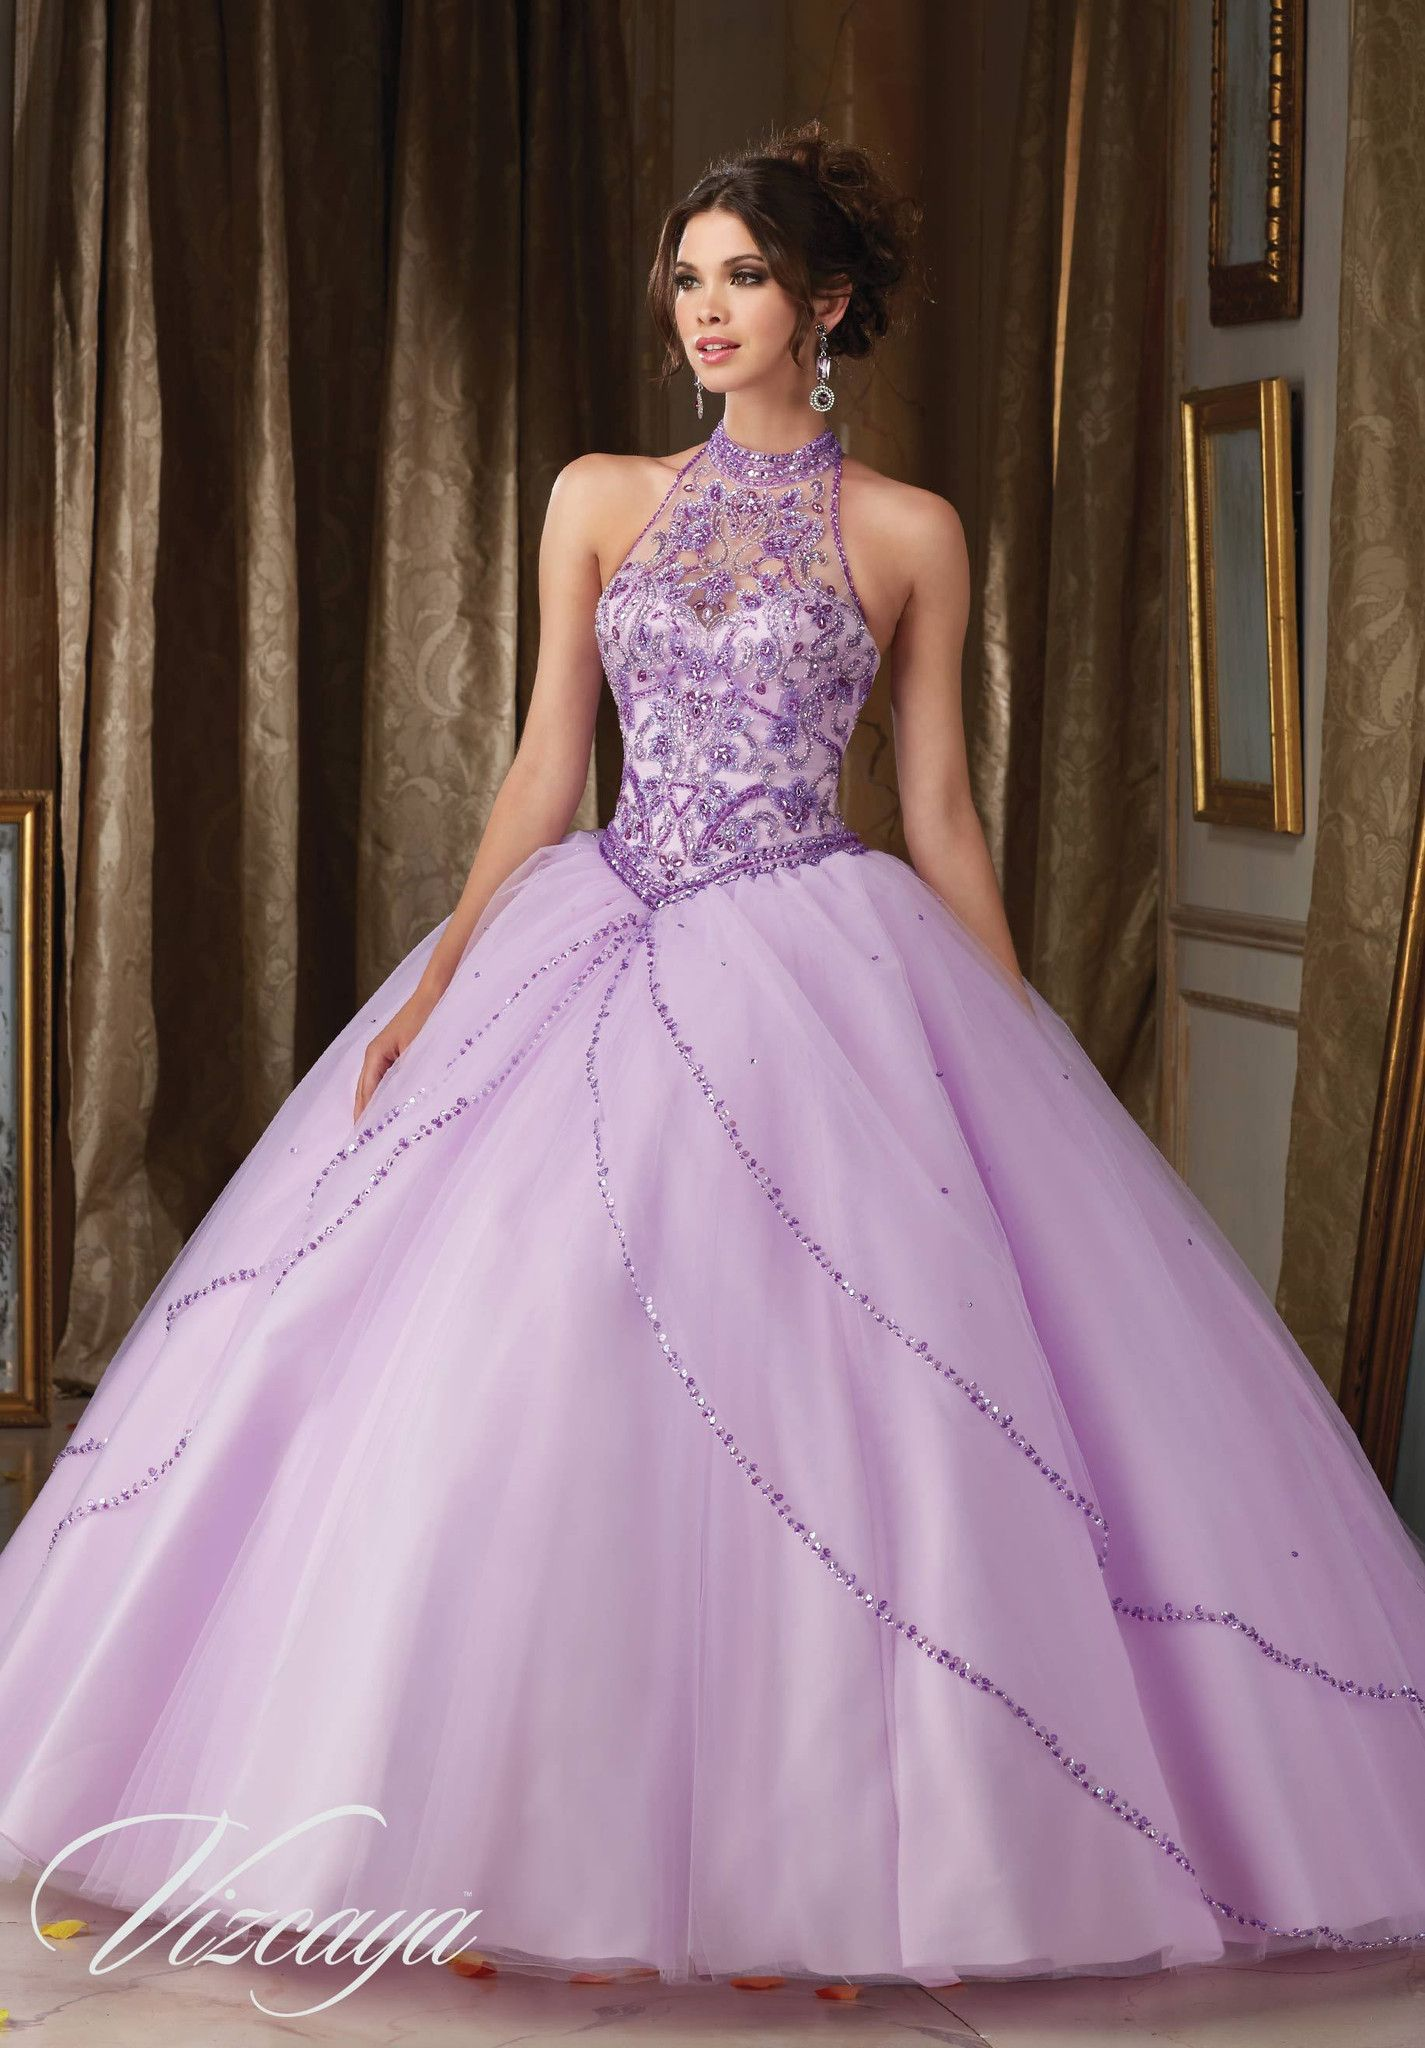 6aa43dac4d7 Jeweled Halter Quinceanera Dress by Mori Lee Vizcaya 89114